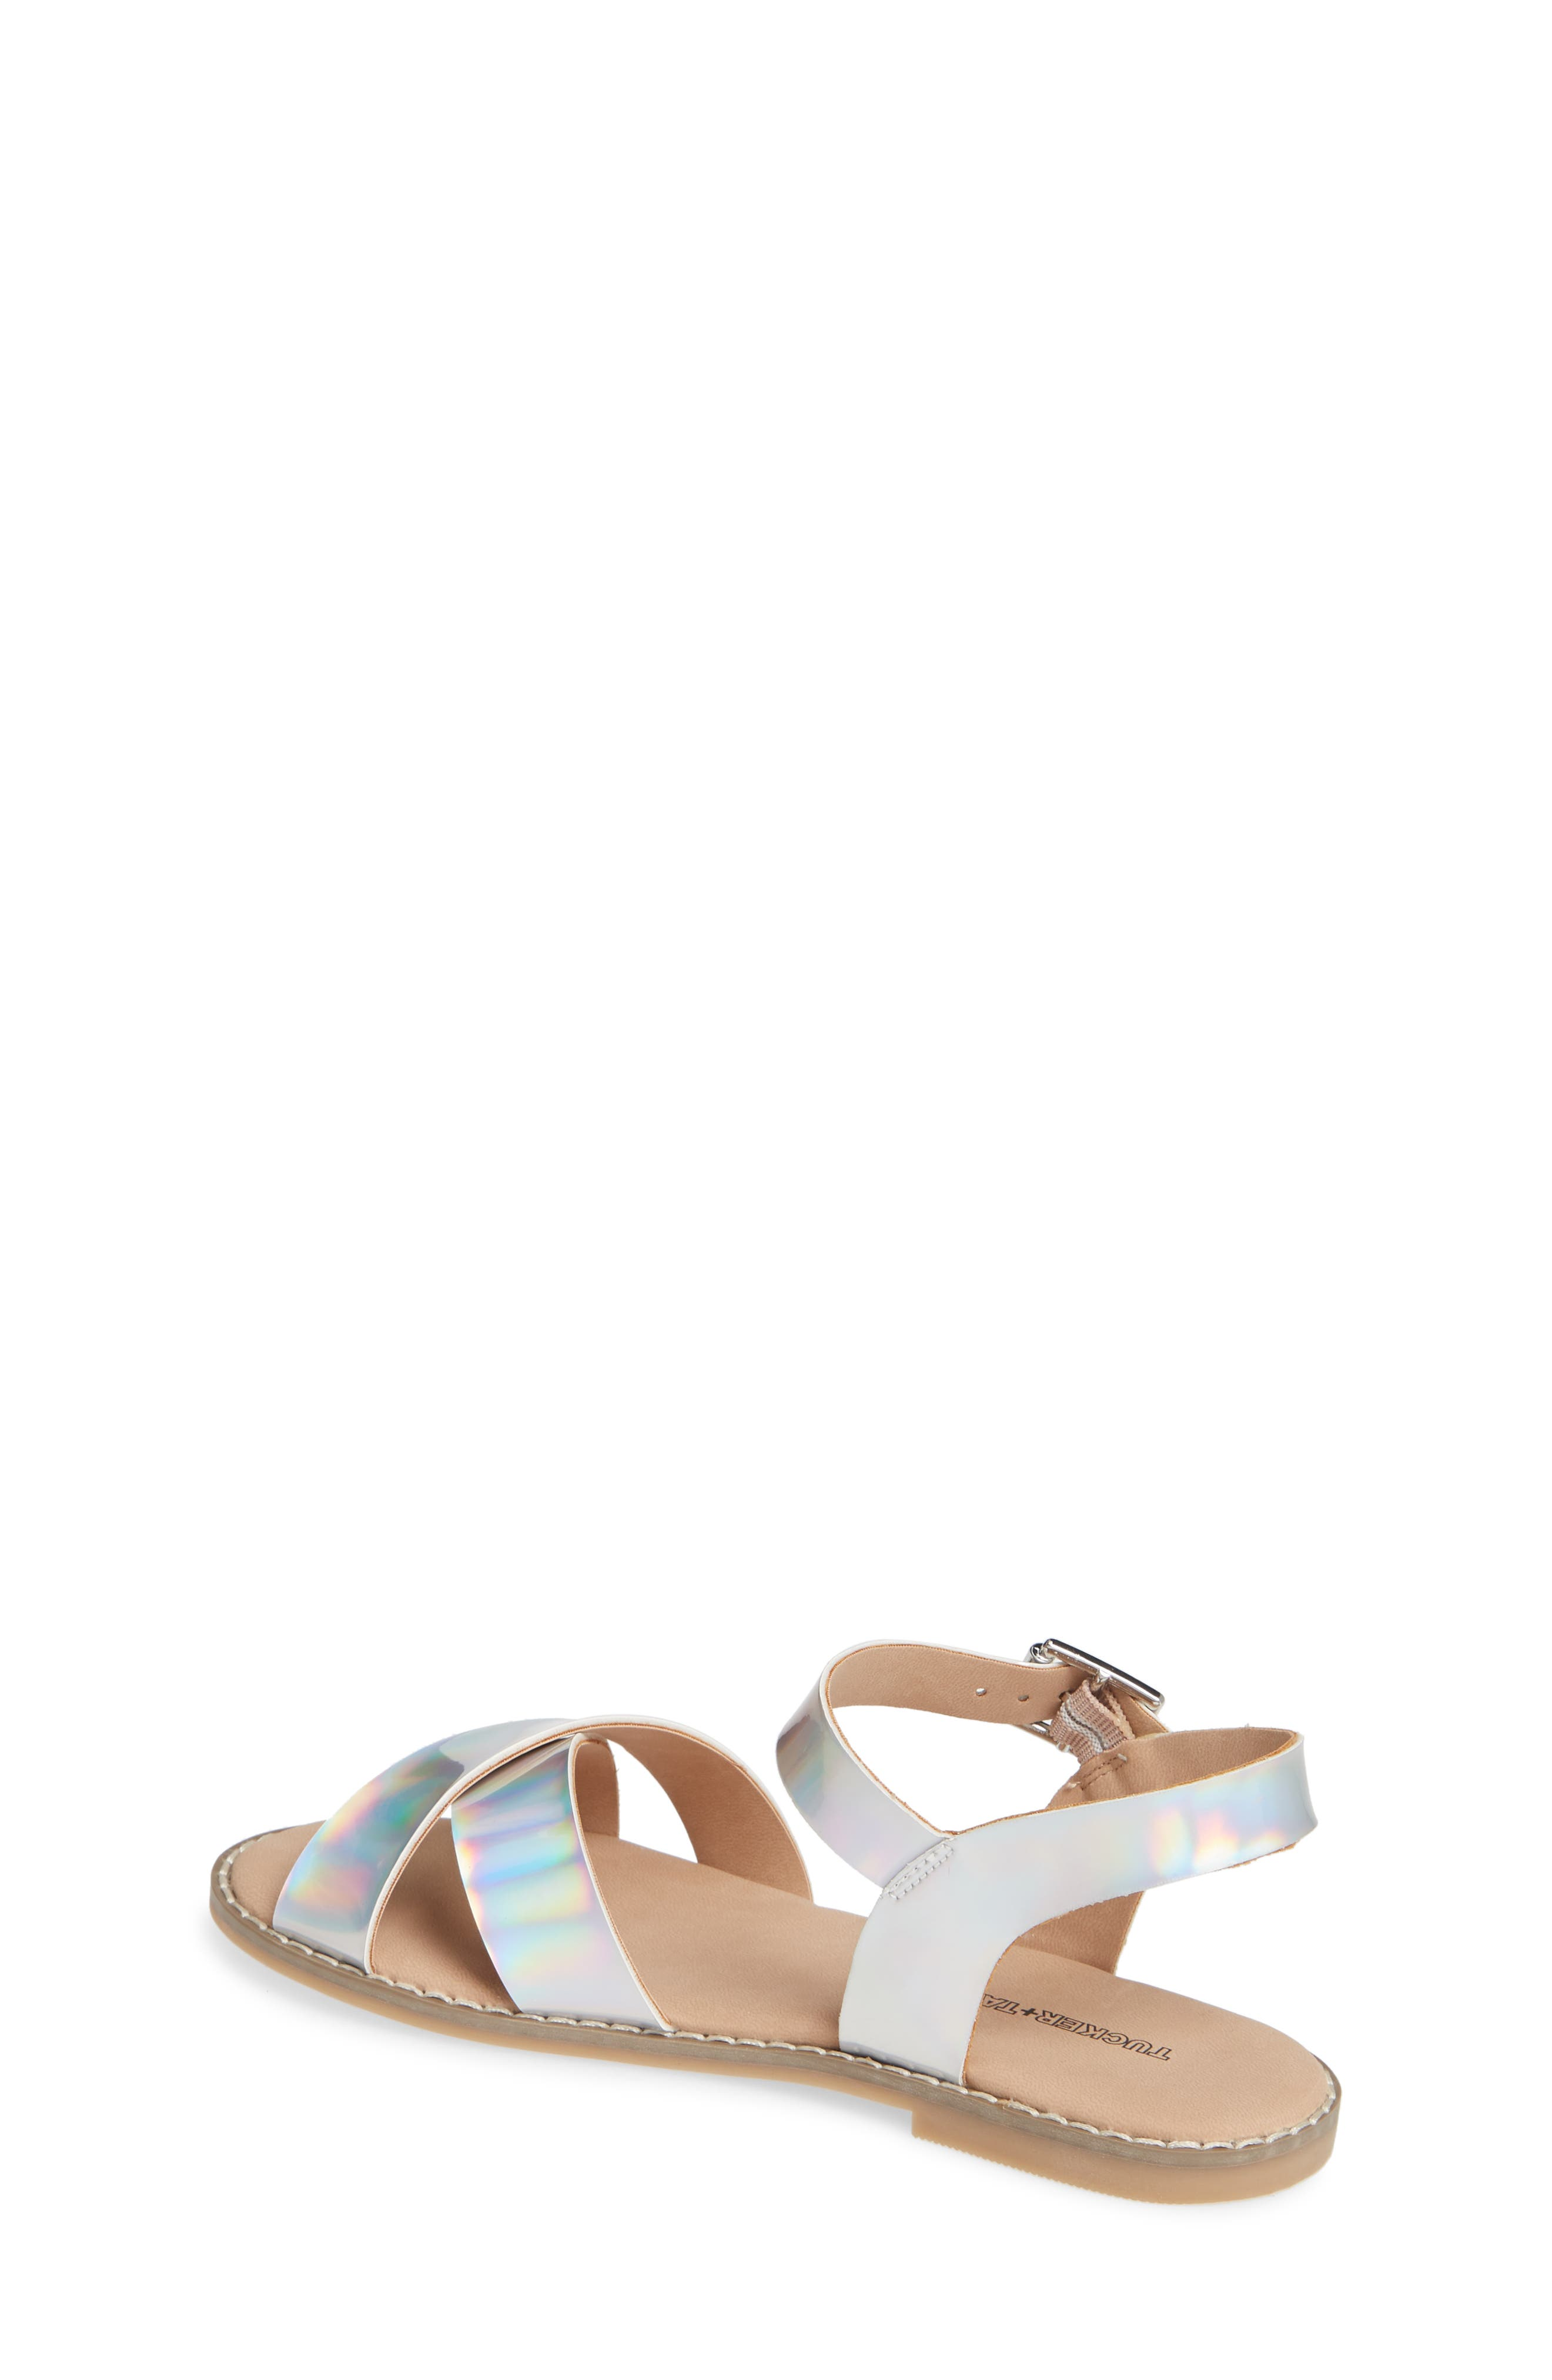 Arya Cross Strap Sandal,                             Alternate thumbnail 2, color,                             SILVER HOLOGRAM FAUX LEATHER